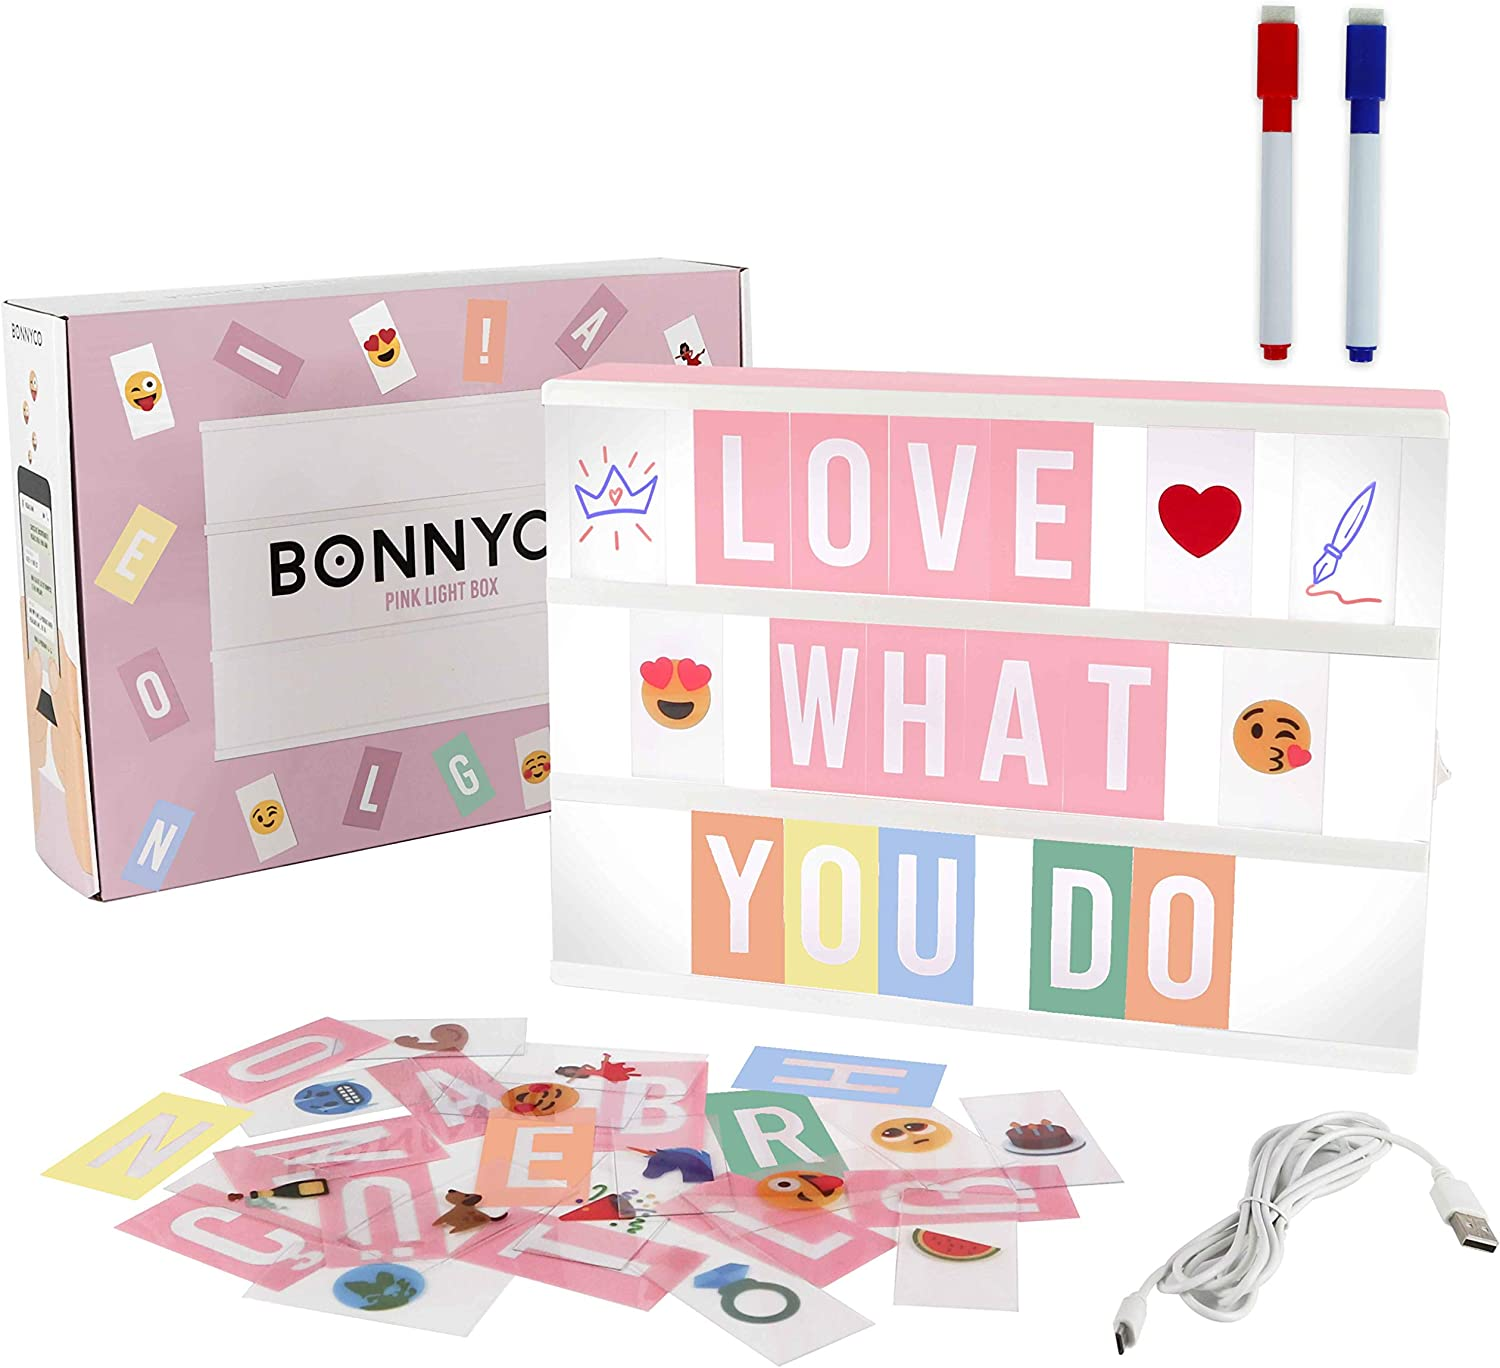 Pink Cinema Light Box with 300 Letters & Emojis & 2 Markers - BONNYCO | Led Light Box Home, Office & Room Decor | Light Up Sign Letters Board Gifts for Women & Girls Christmas & Birthdays | Pink Decor